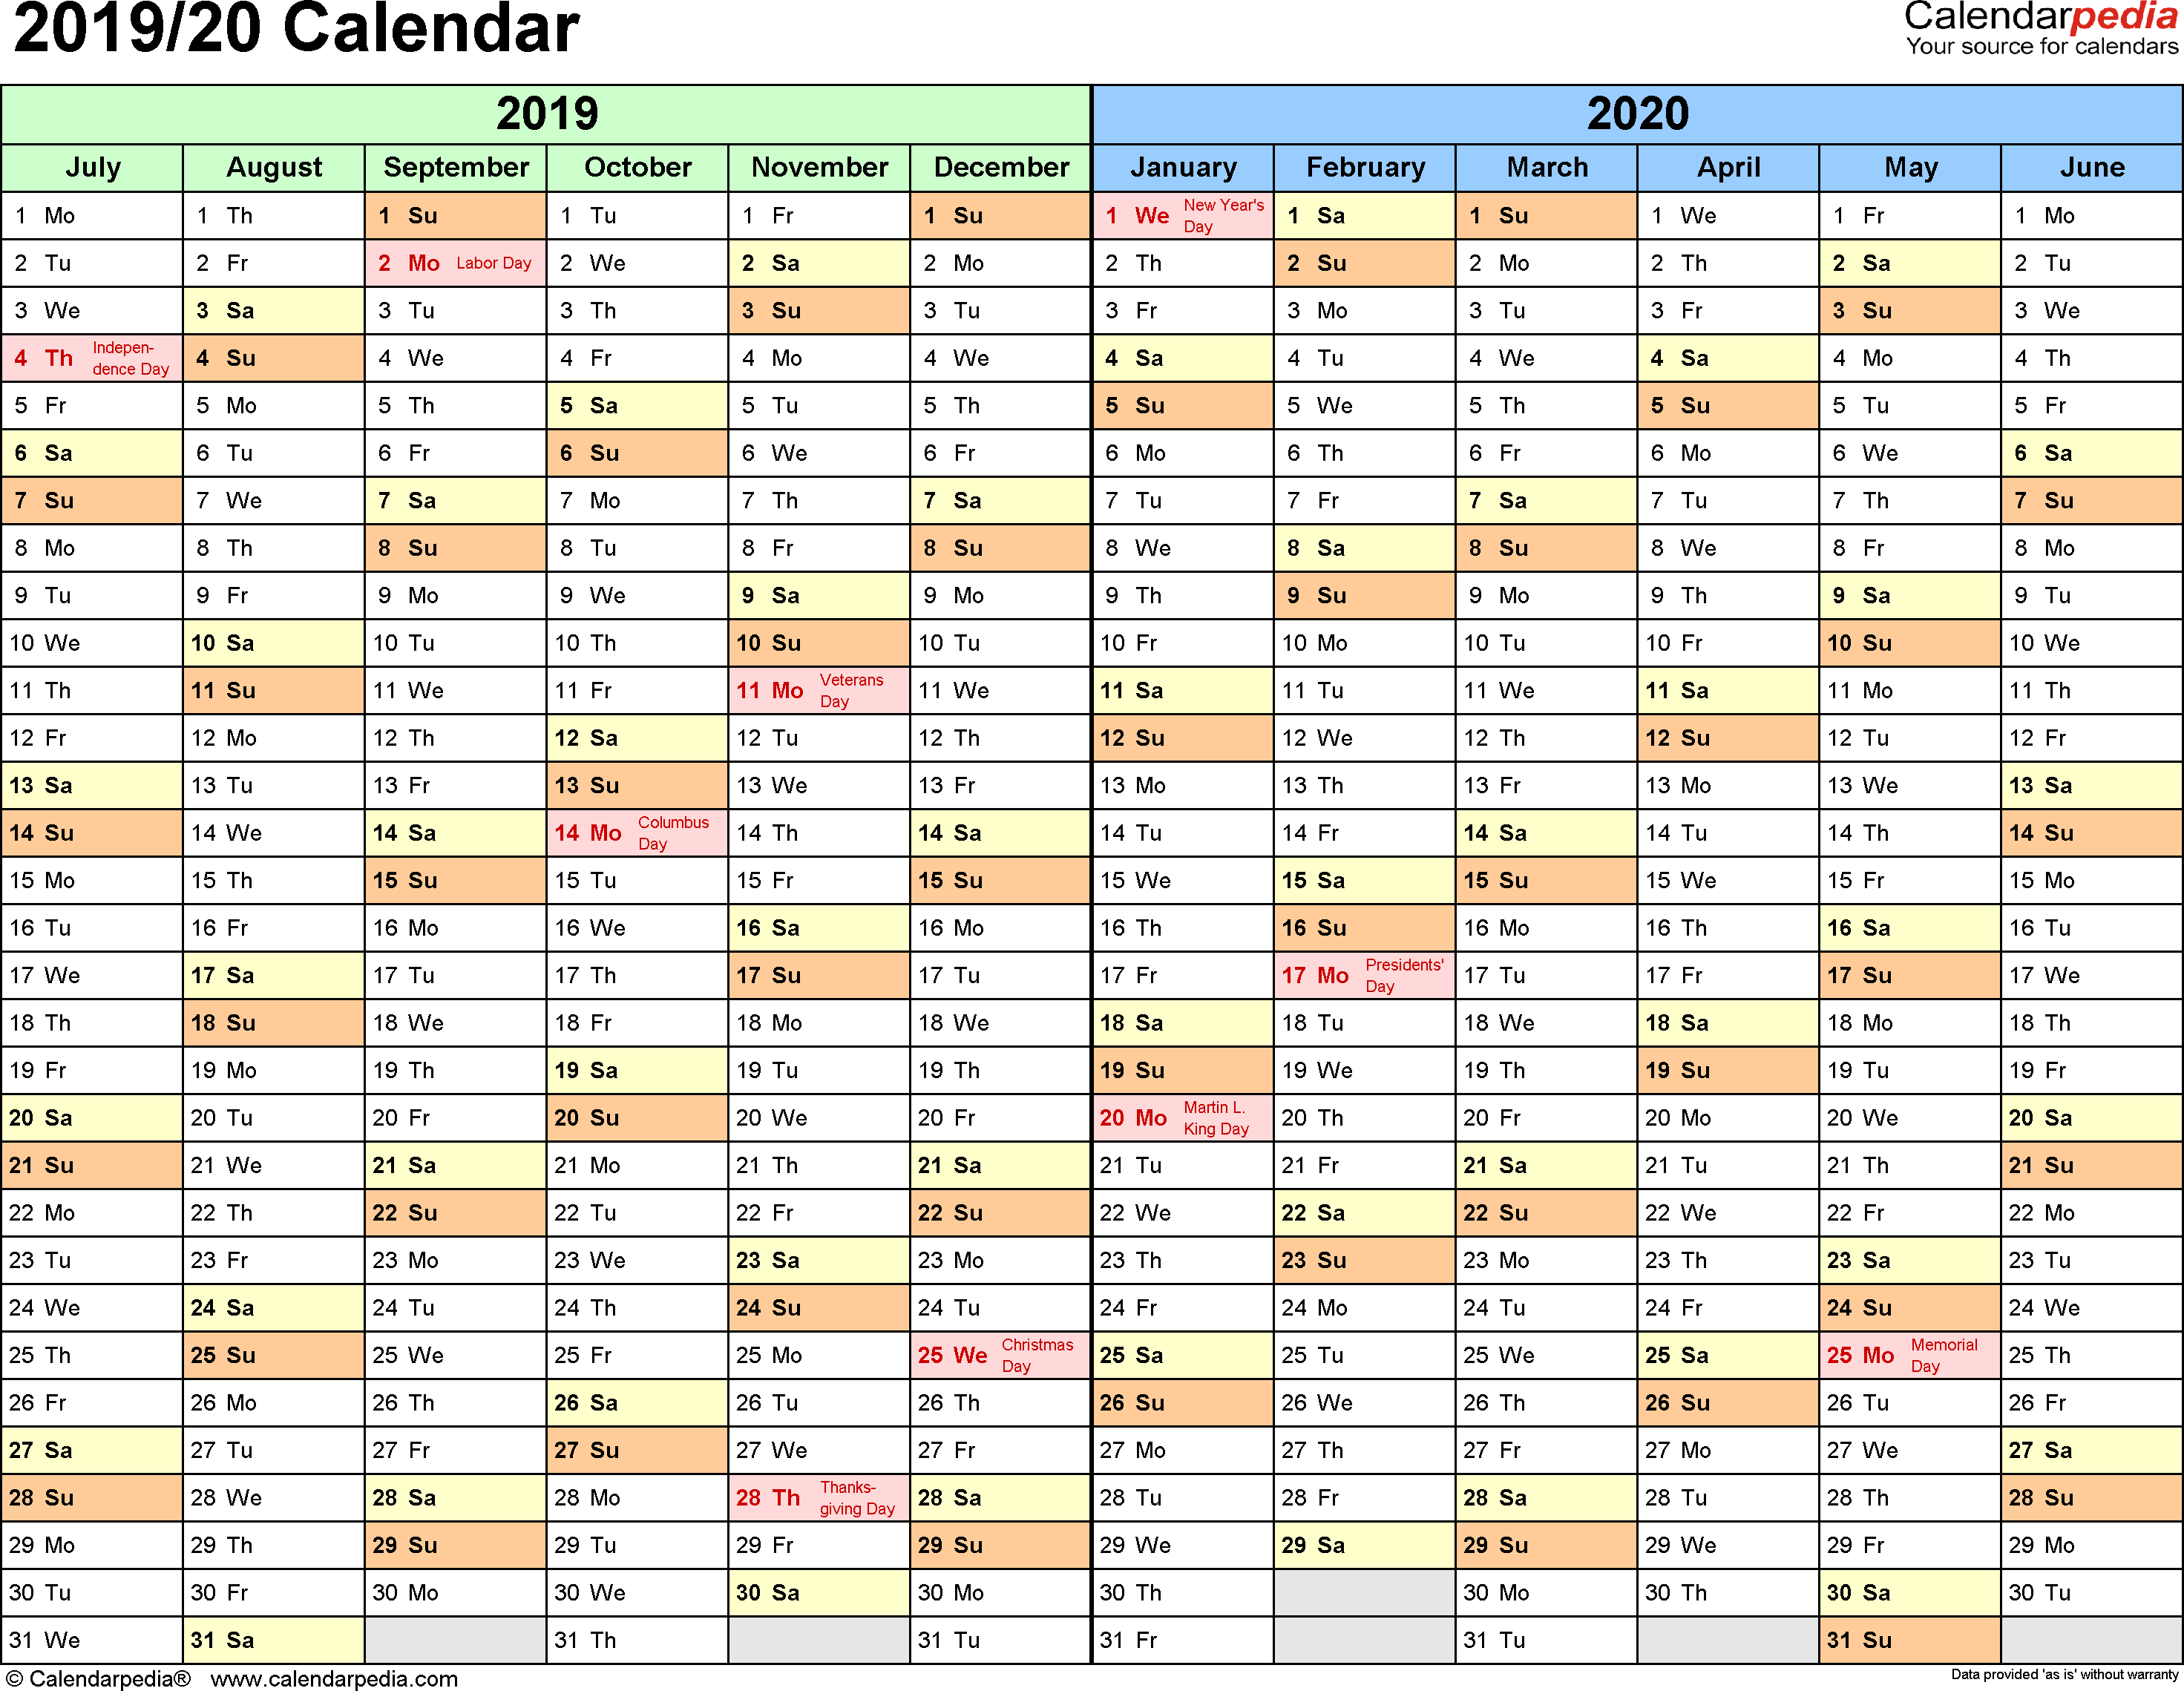 Fiscal Year 2019 Calendar With Split 20 July To June Excel Templates